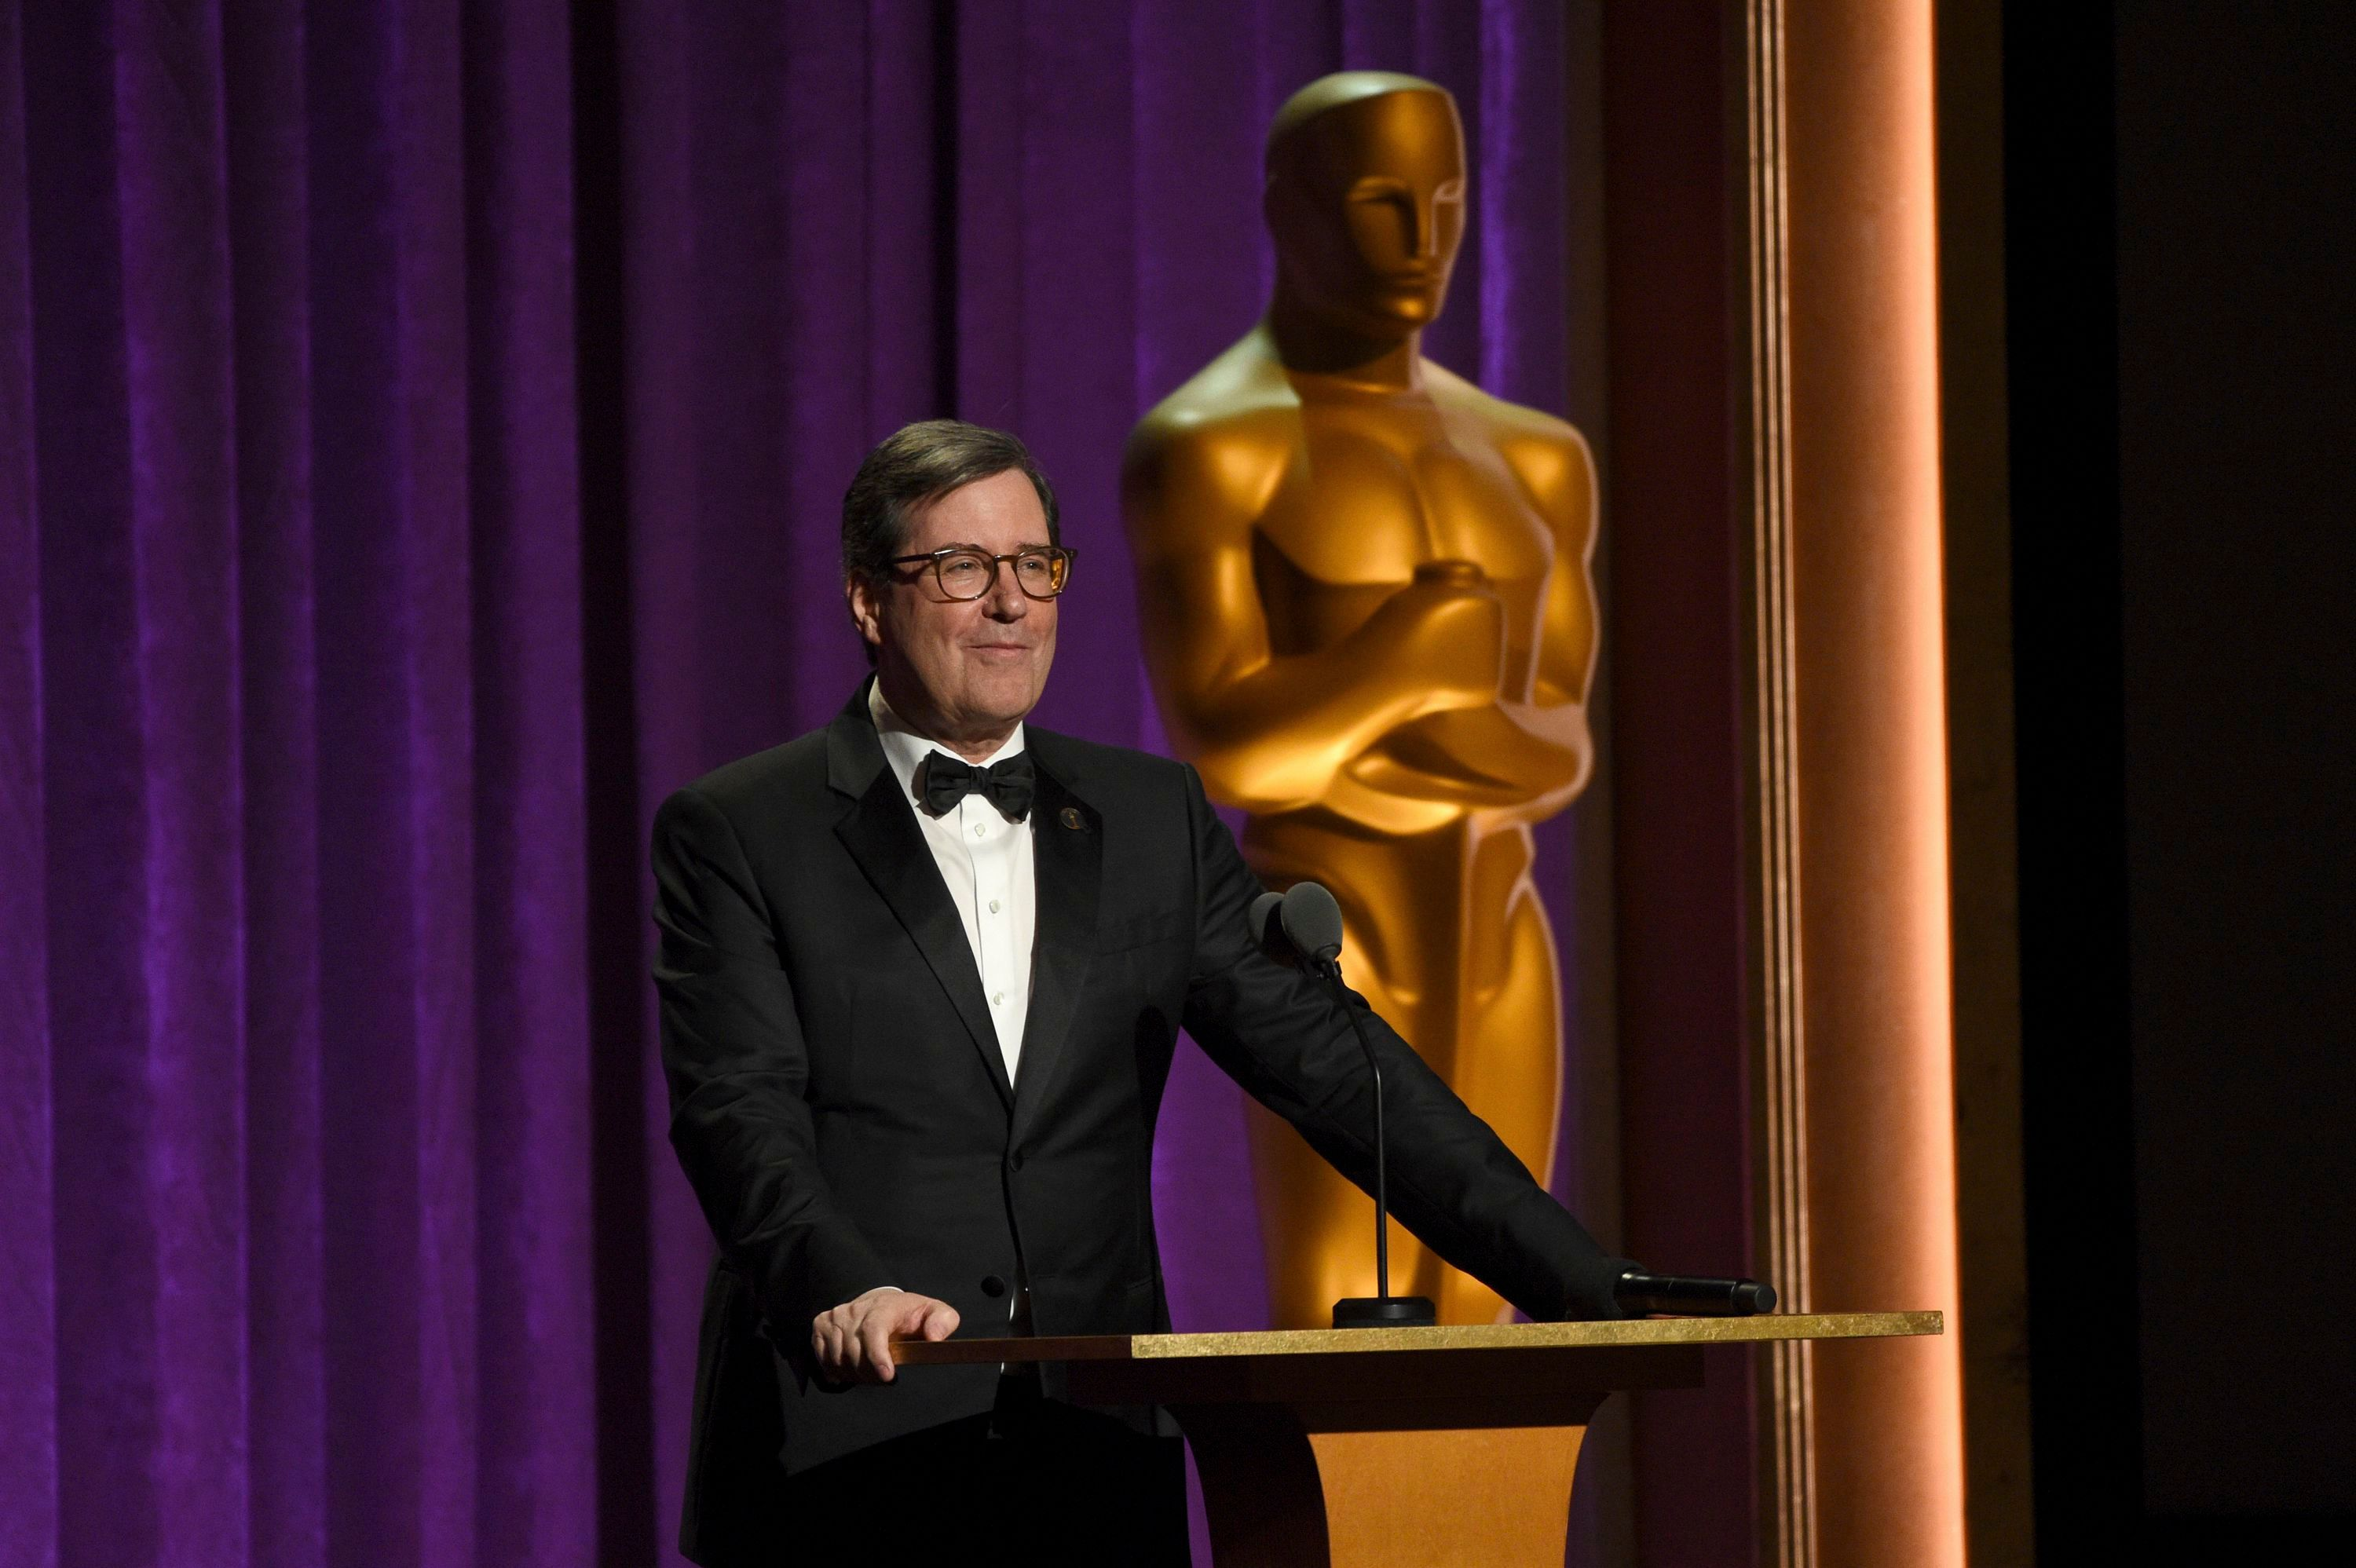 AMPAS President David Rubin speaks at the Governors Awards, at the Dolby Ballroom in Los Angeles2019 Governors Awards - Show, Los Angeles, USA - 27 Oct 2019